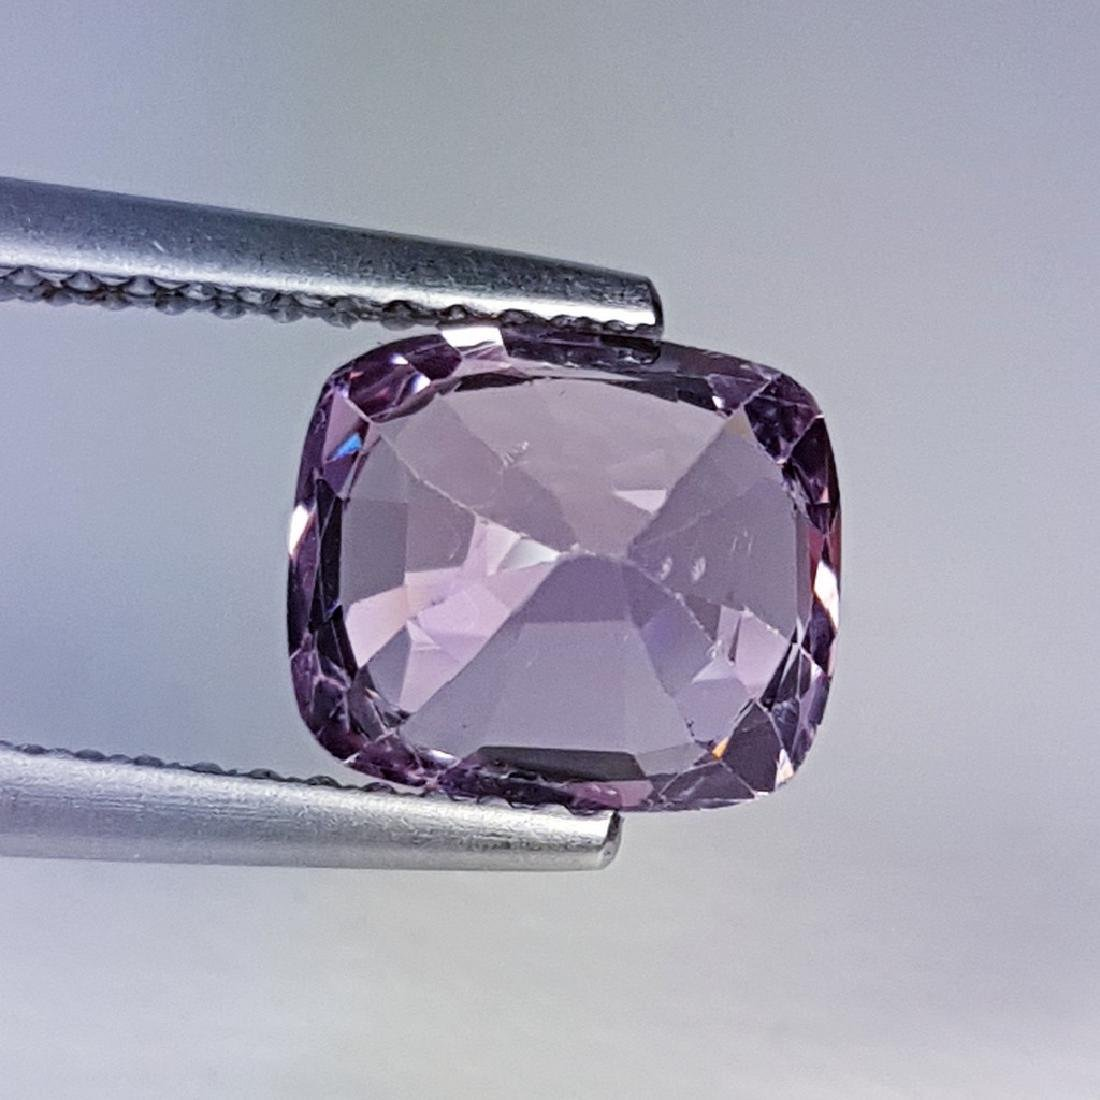 2.75 ct Exclusive Gem Cushion Cut Natural Spinel - 5